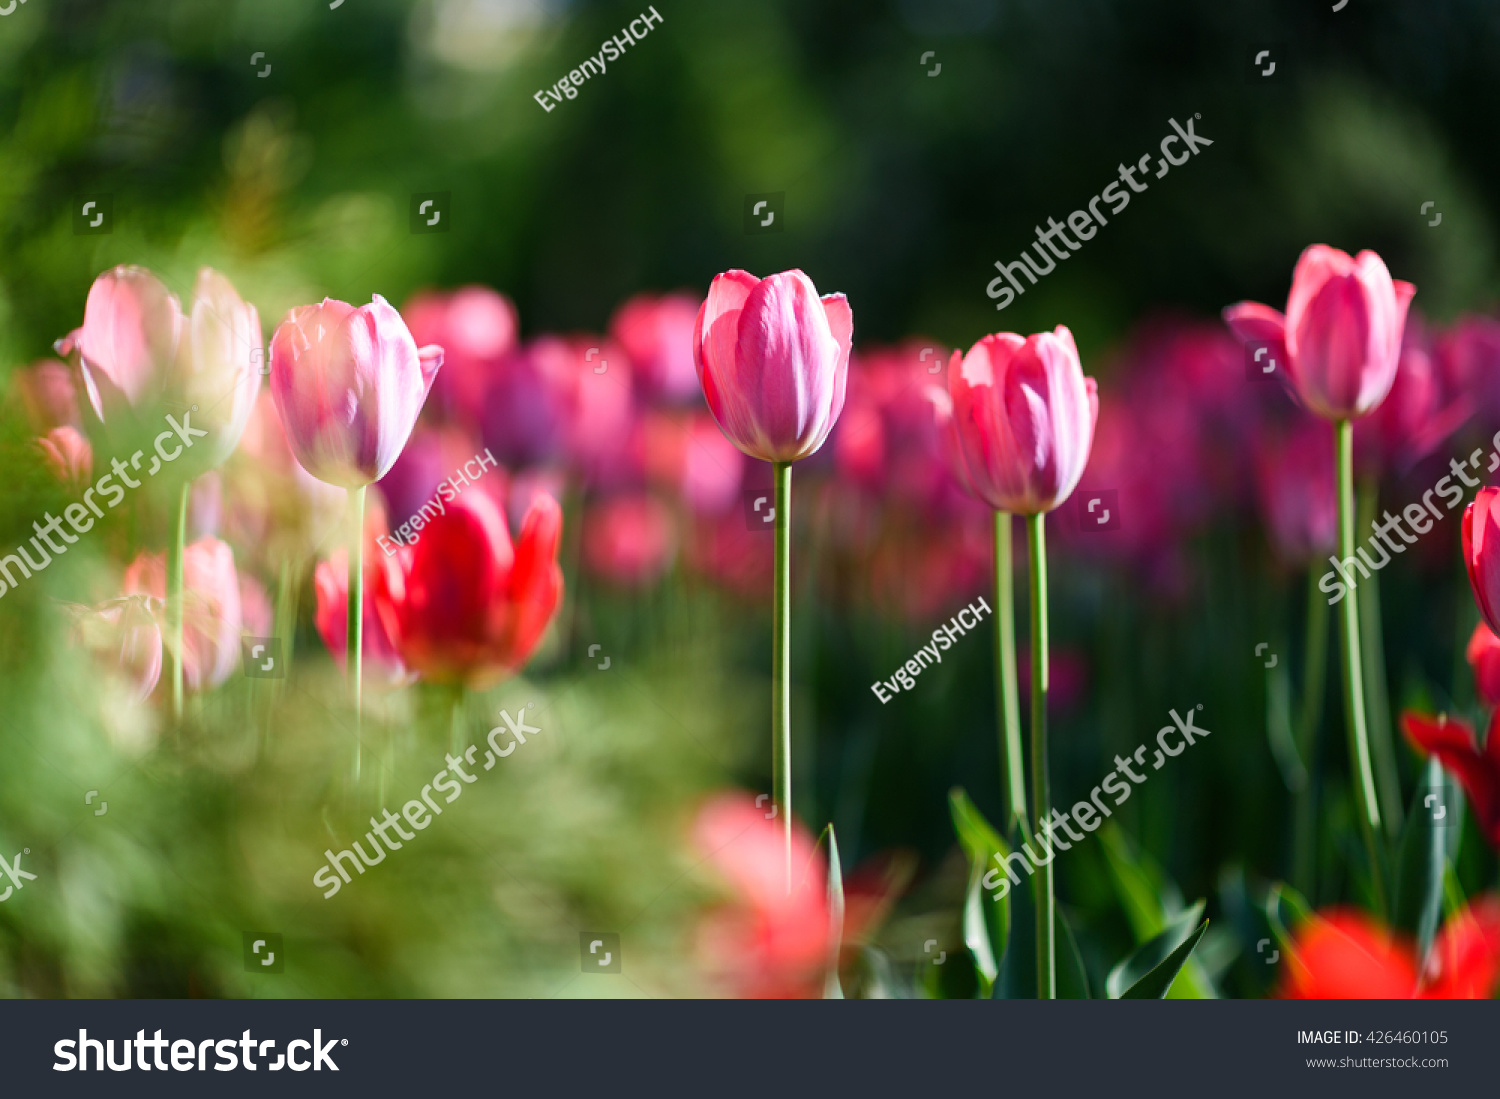 amazing nature concept pink tulips flowering stock photo 426460105